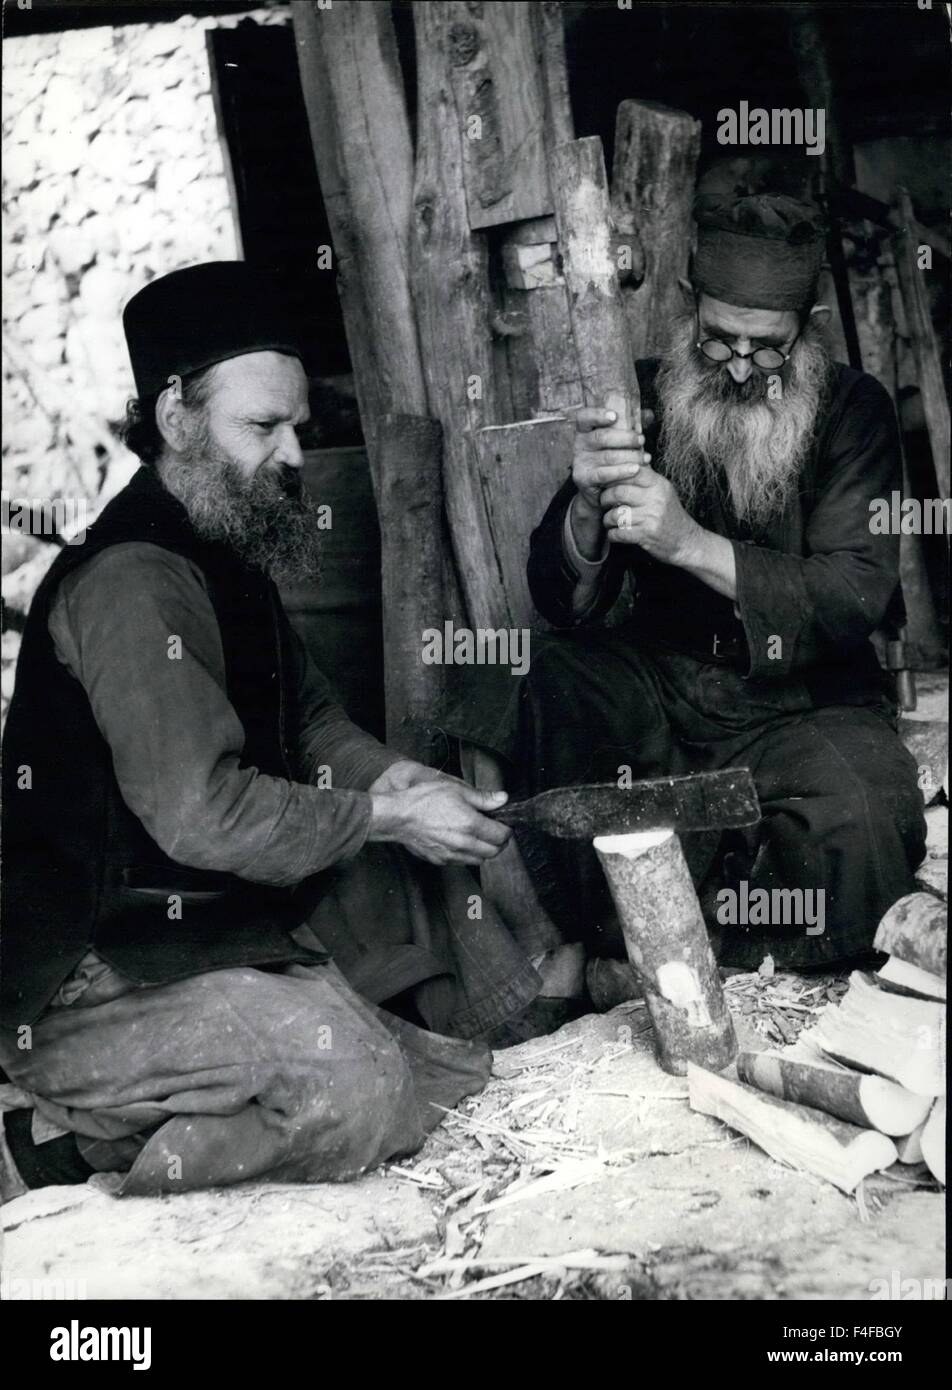 Athos Monastery Republic. 24th Feb, 1958. These are lower-class monks whose bedraggled clothes contrast strongly - Stock Image